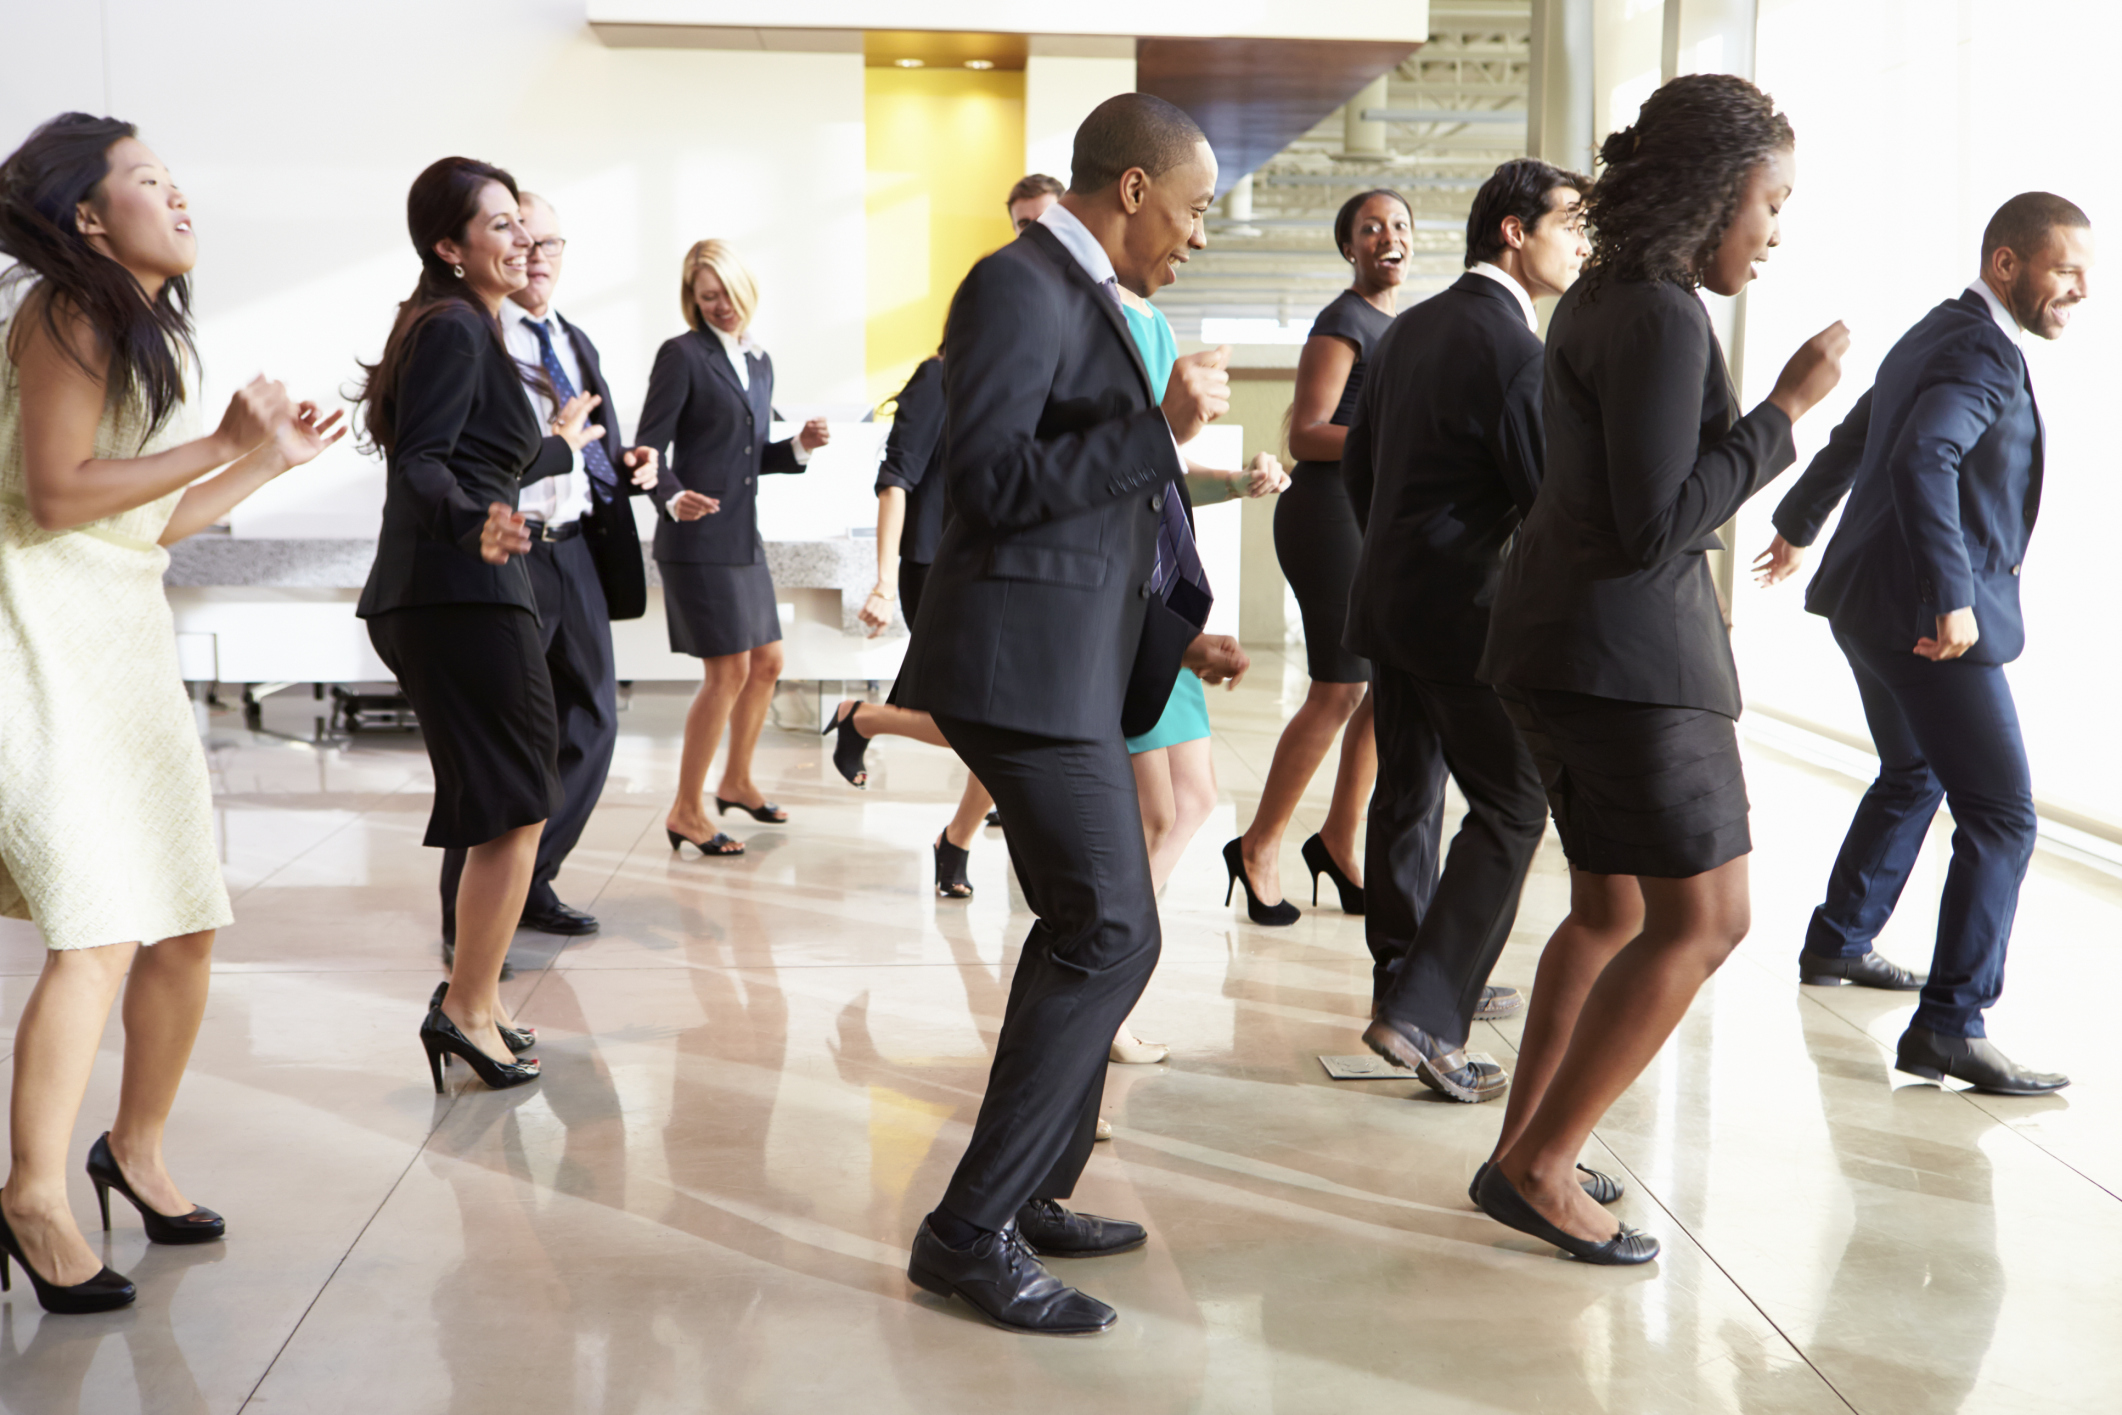 Businesspeople dancing in lobby